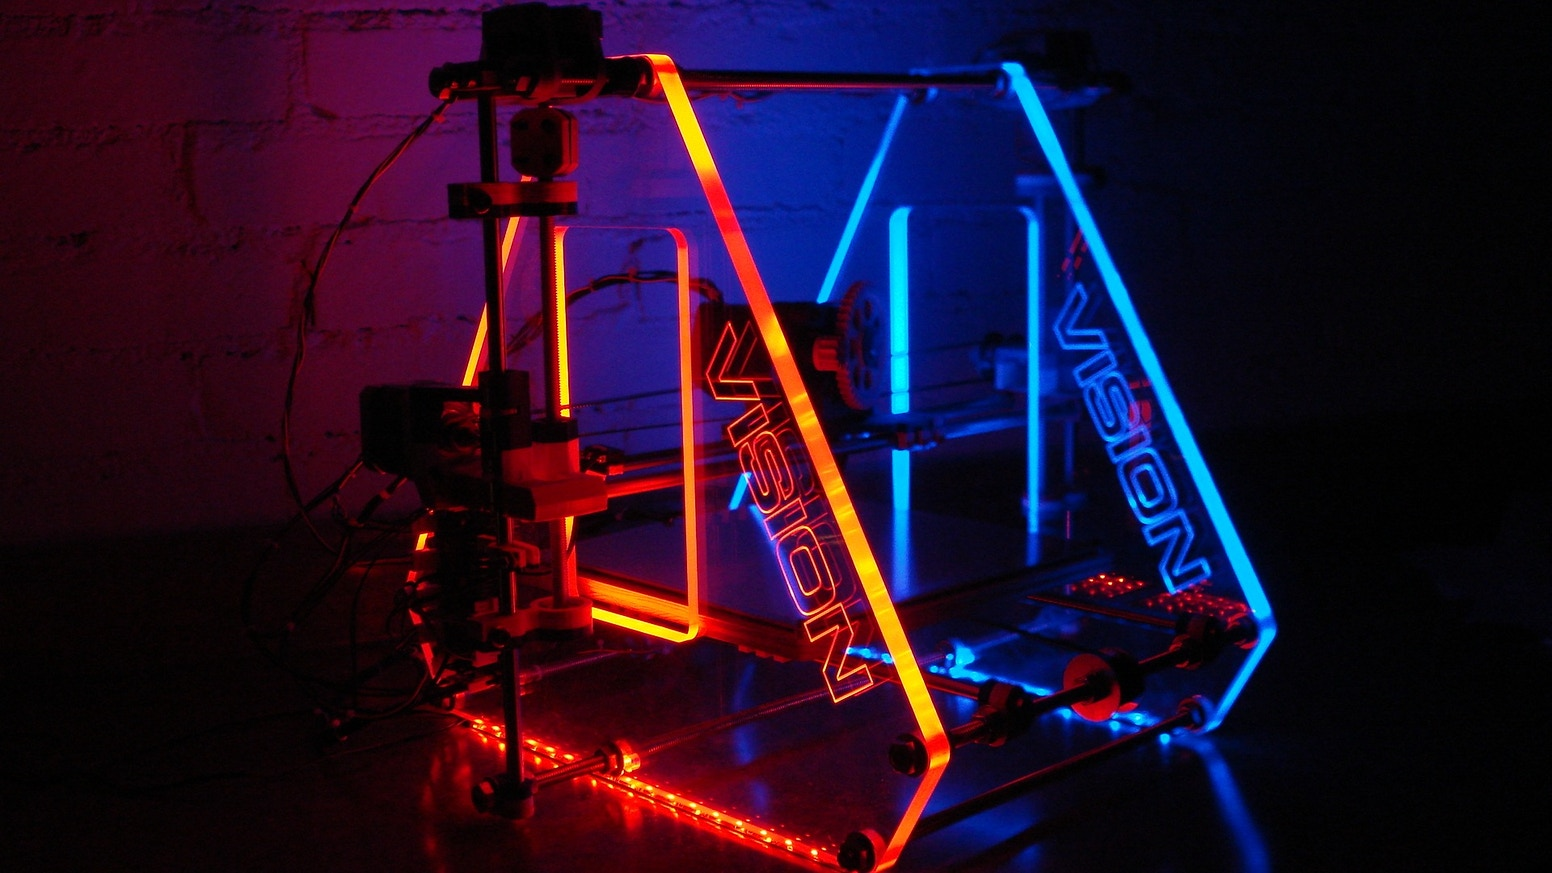 Start 3d printing with an affordable quick build optimized large format 3d printer available as a diy kit or fully assembled